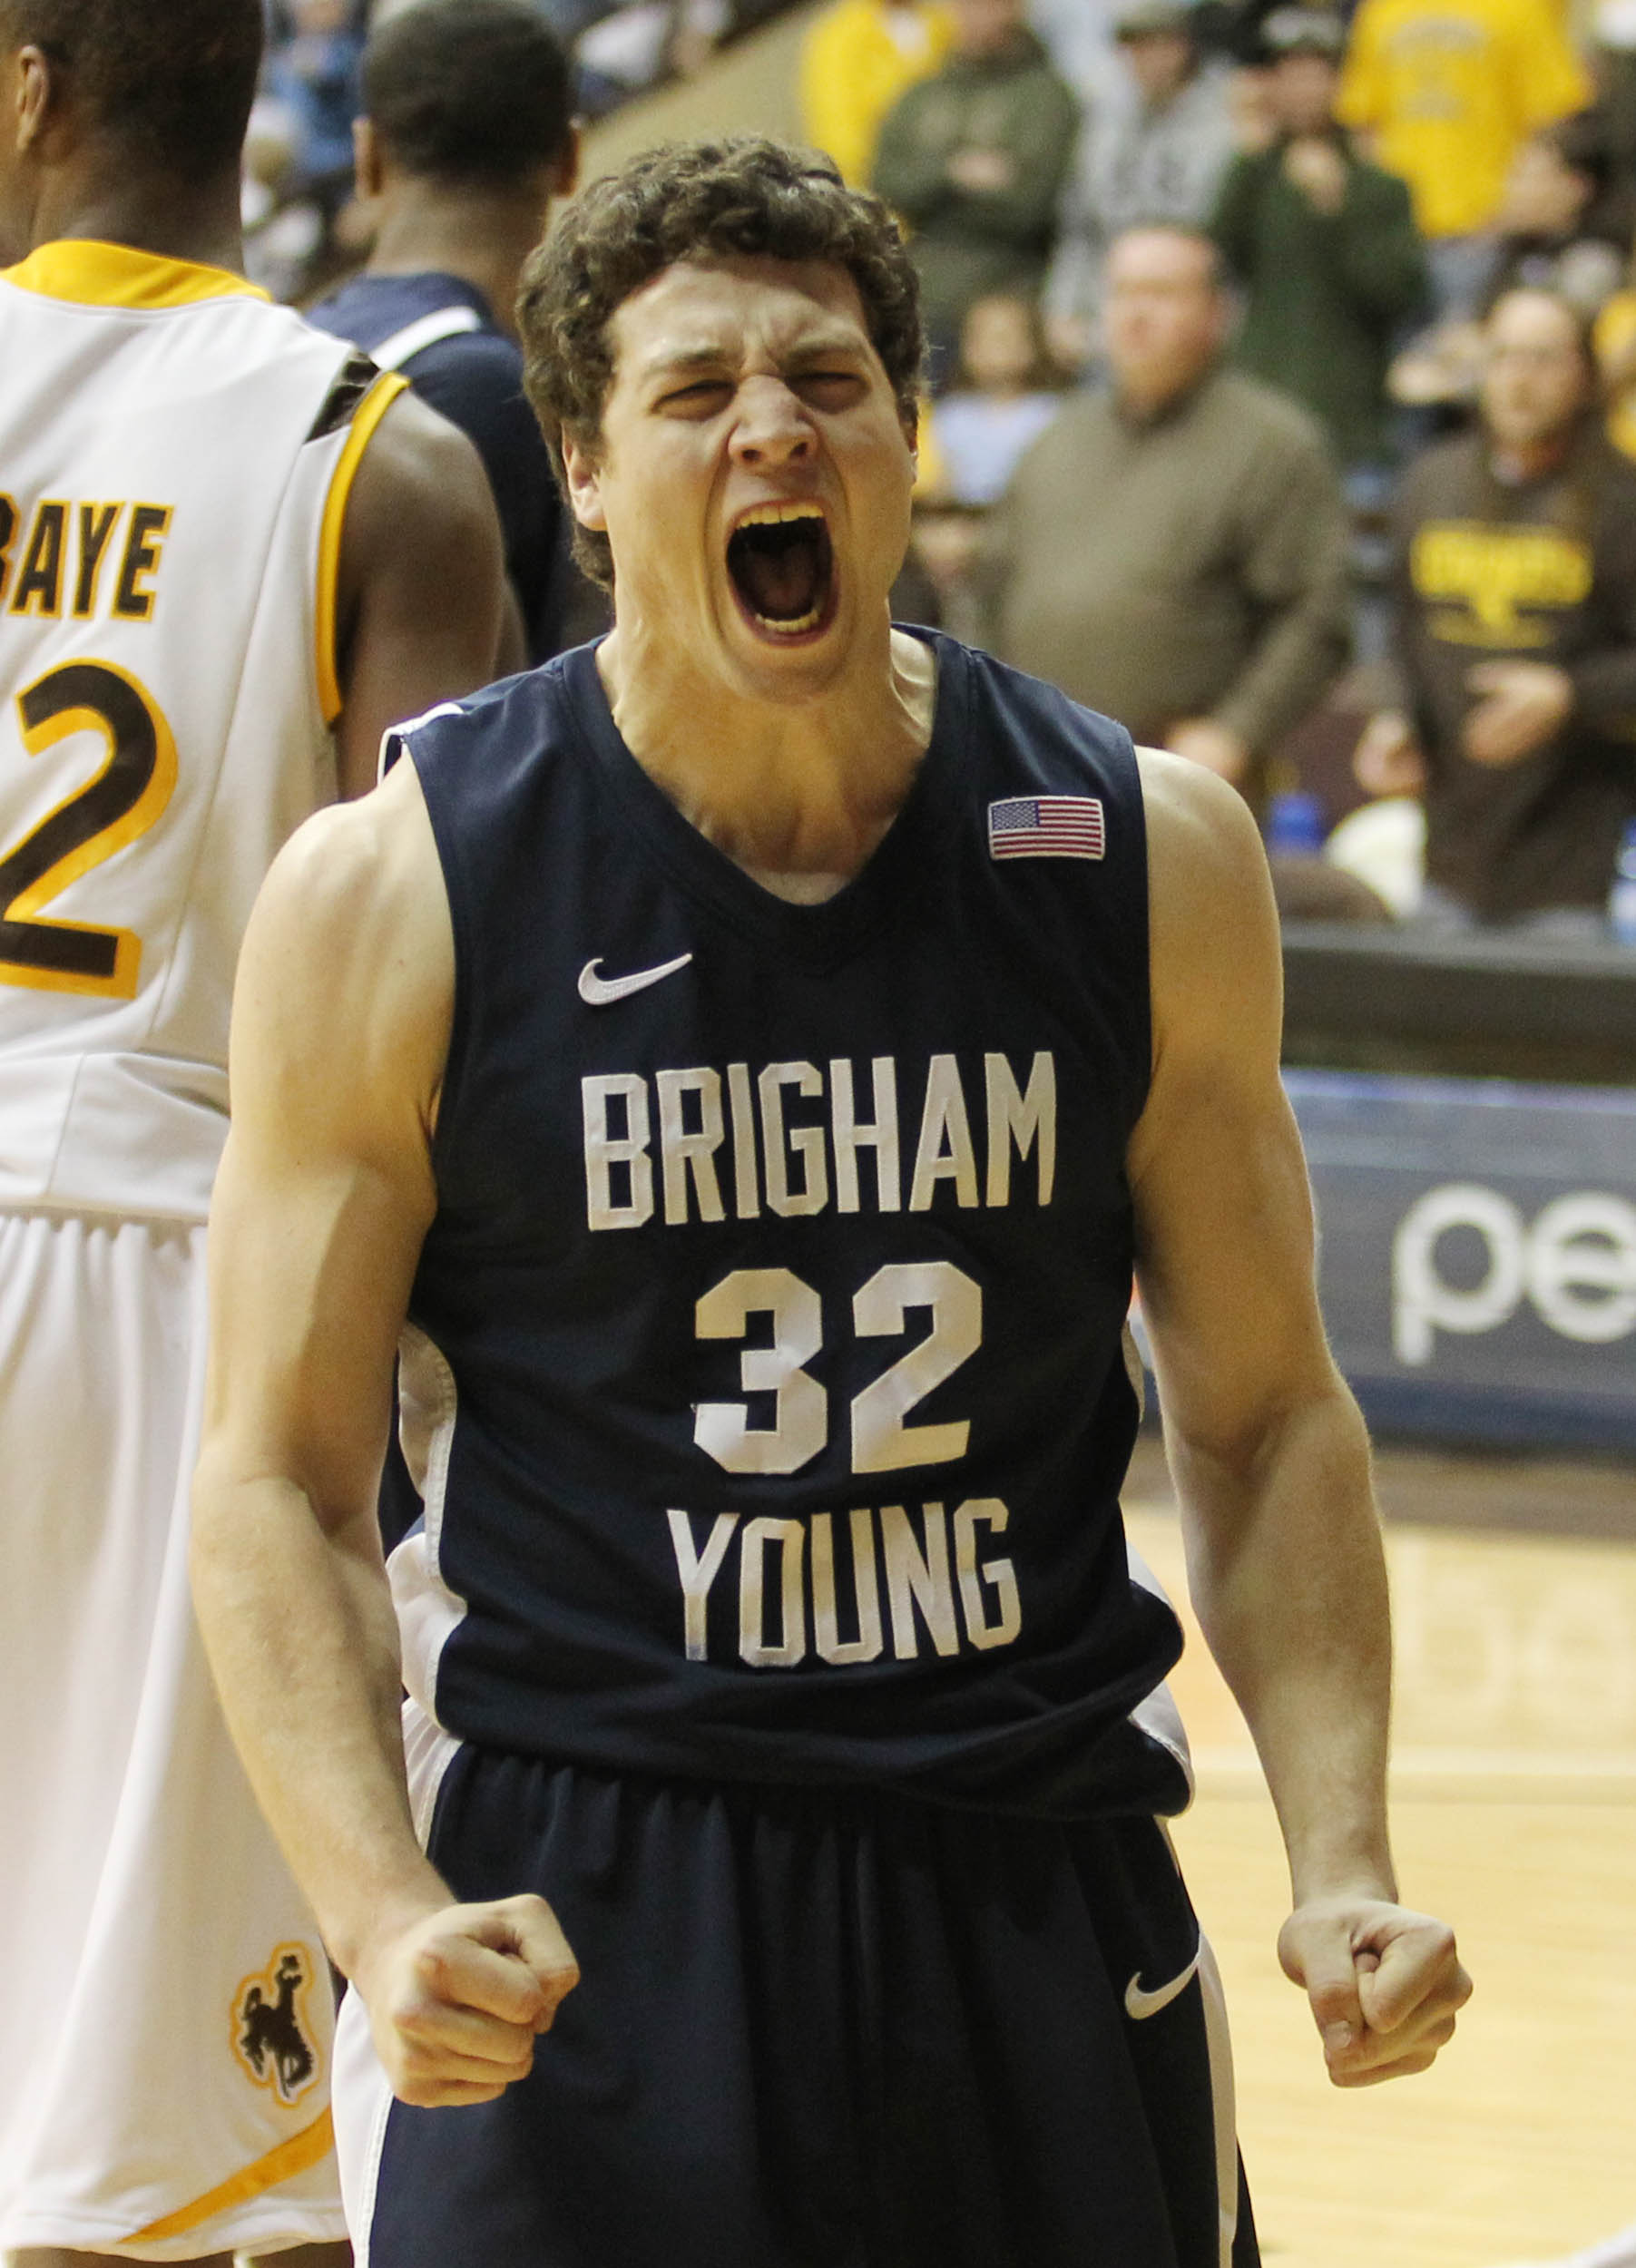 BYU guard Jimmer Fredette reacts after drawing a foul for a three-point play duringan NCAA college basketball game against Wyoming on Wednesday, Feb. 2, 2011, at the Arena-Auditorium in Laramie, Wyo. BYU won 69-62. (AP Photo/Andy Carpenean) n)